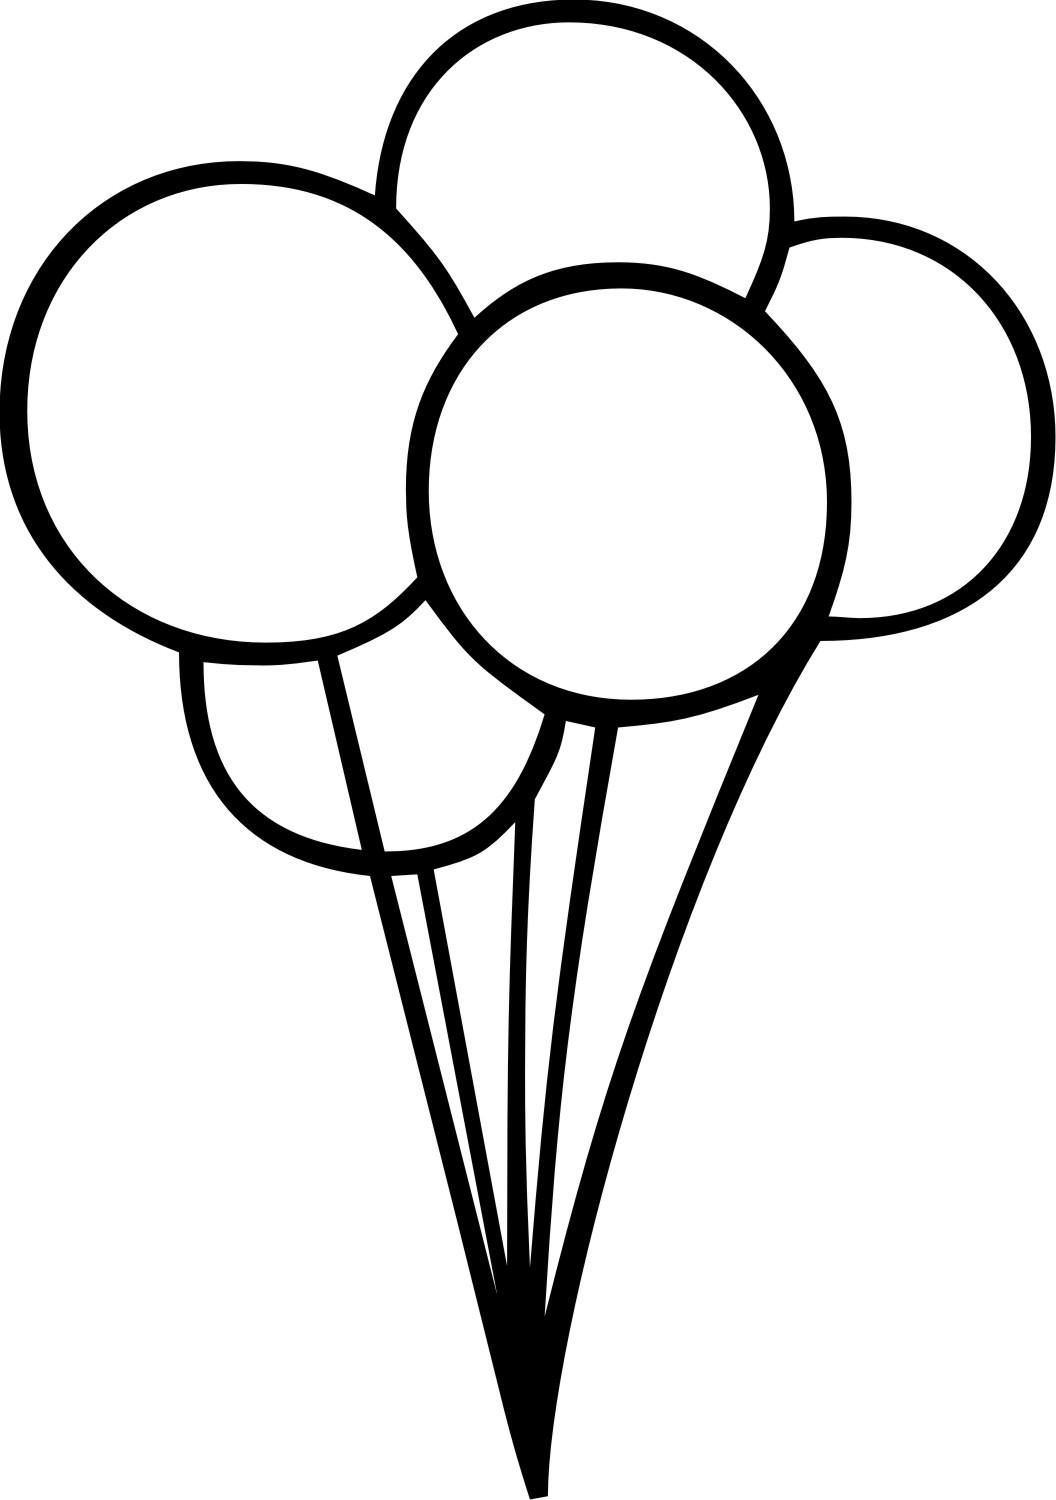 1056x1500 Hd Black And White Balloons Bunch Clipart Design